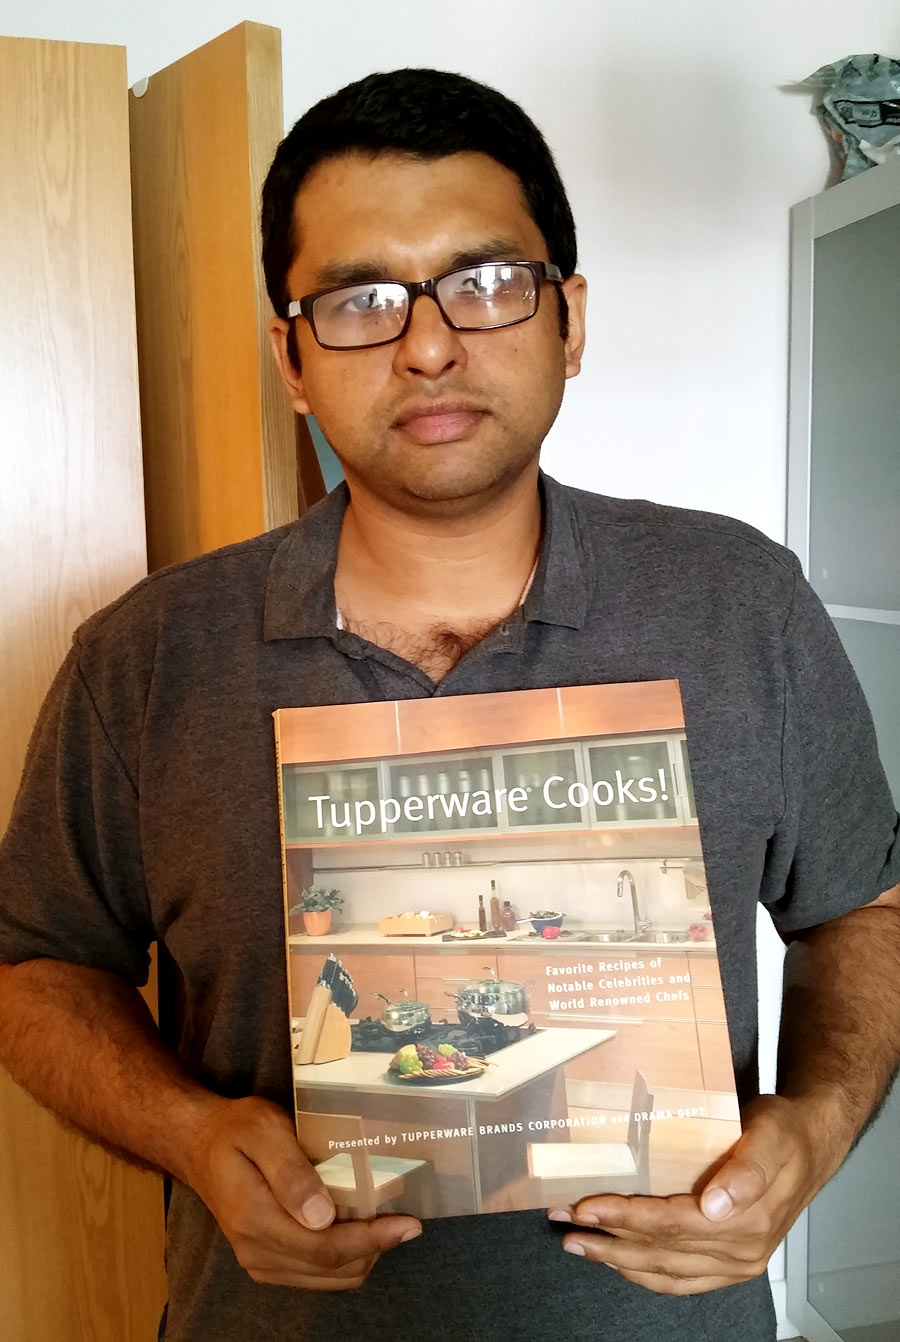 The writer poses with the very book with which he won the 2013 All Kerala Under-17 Book Cricket League